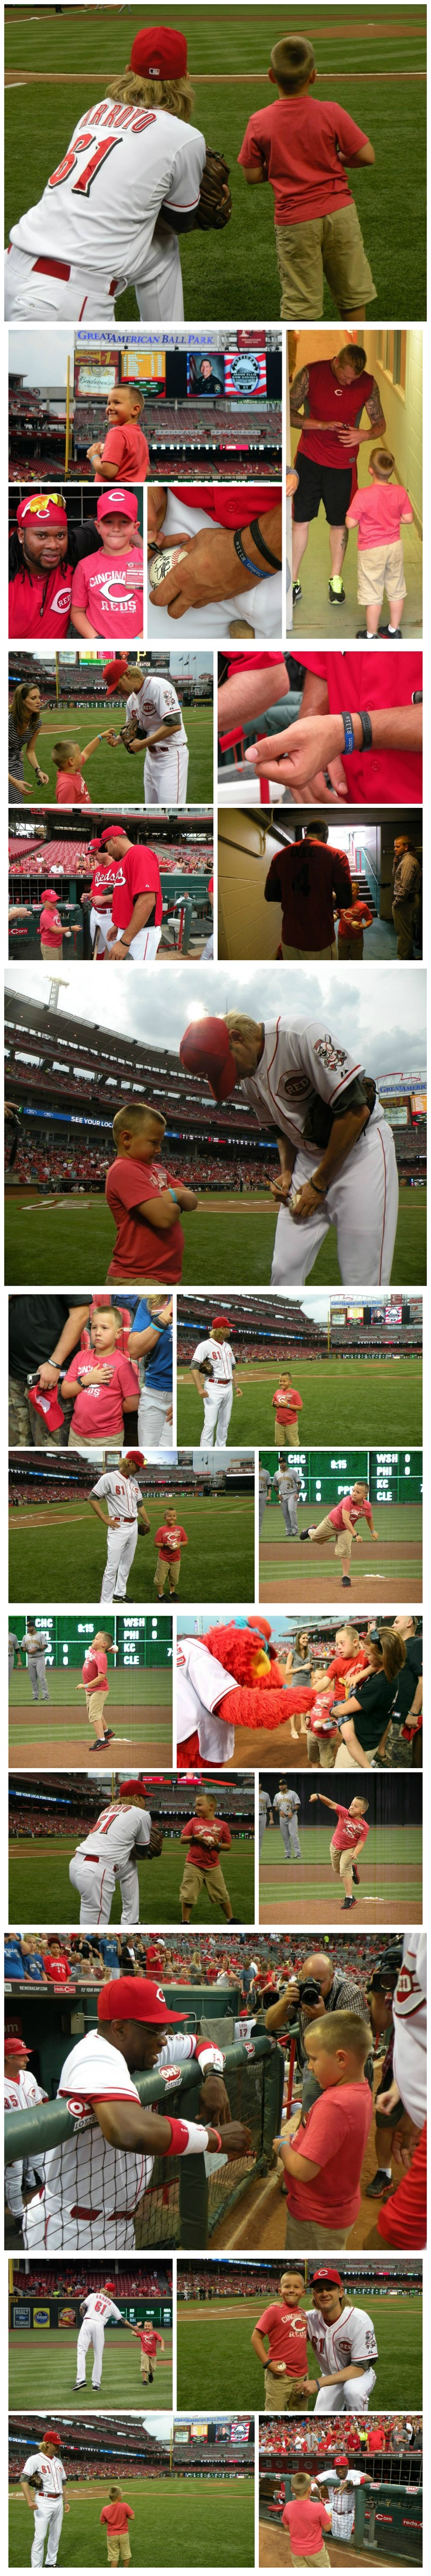 Parker Ellis, the son of Bardstown, KY Police Officer Jason Ellis, meets Reds players during batting practice and throws out a first pitch.   Officer Ellis paid the ultimate sacrifice when he was killed in the line of duty on May 25th. Officer Ellis was a graduate of Glen Este High School & played for one season in the Reds minor league system with the Billings Mustangs. #reds